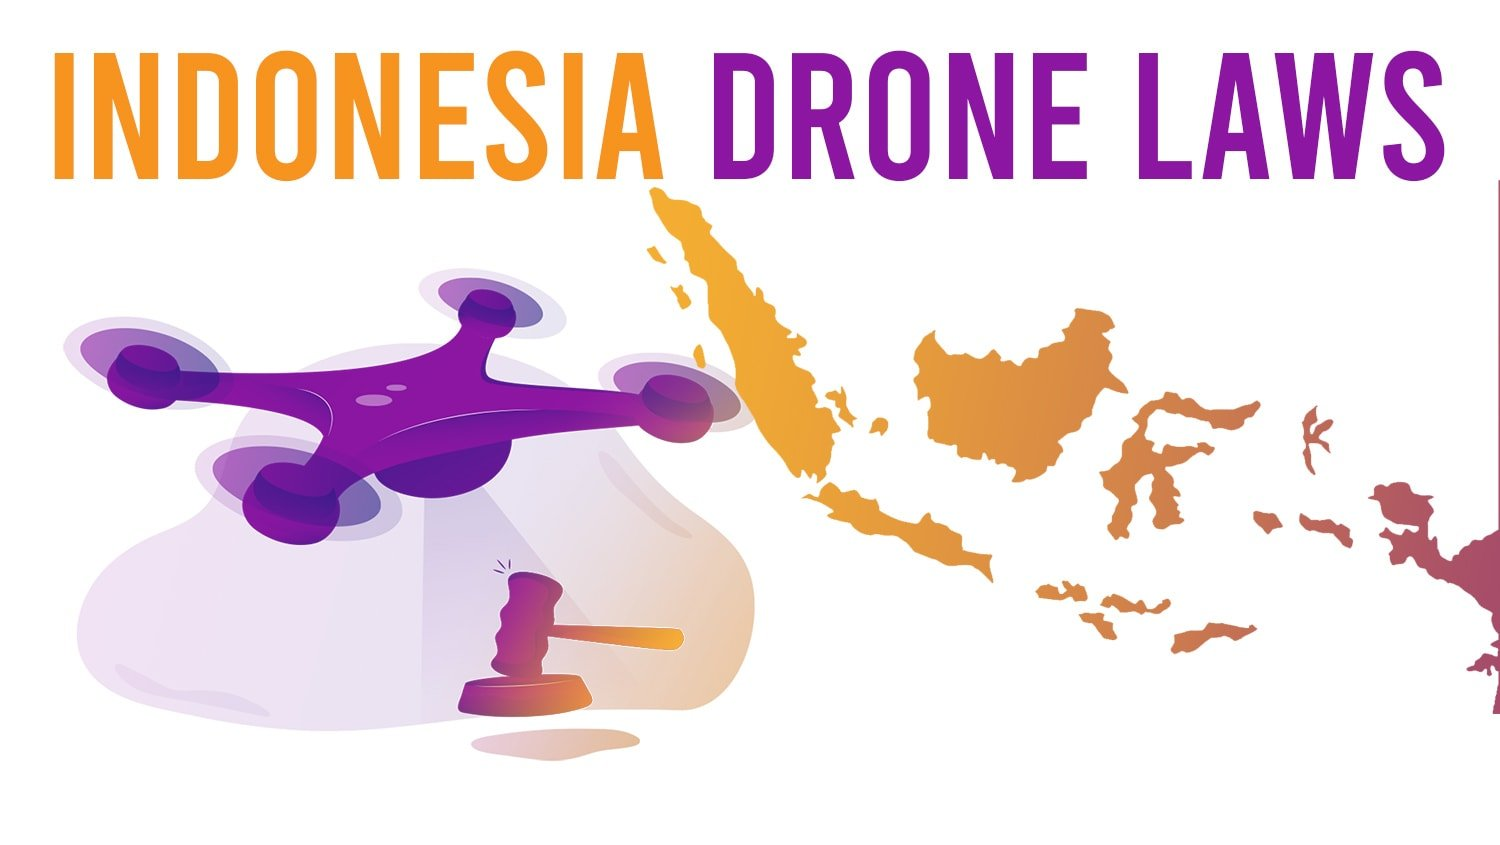 indonesia-drone-laws.jpg